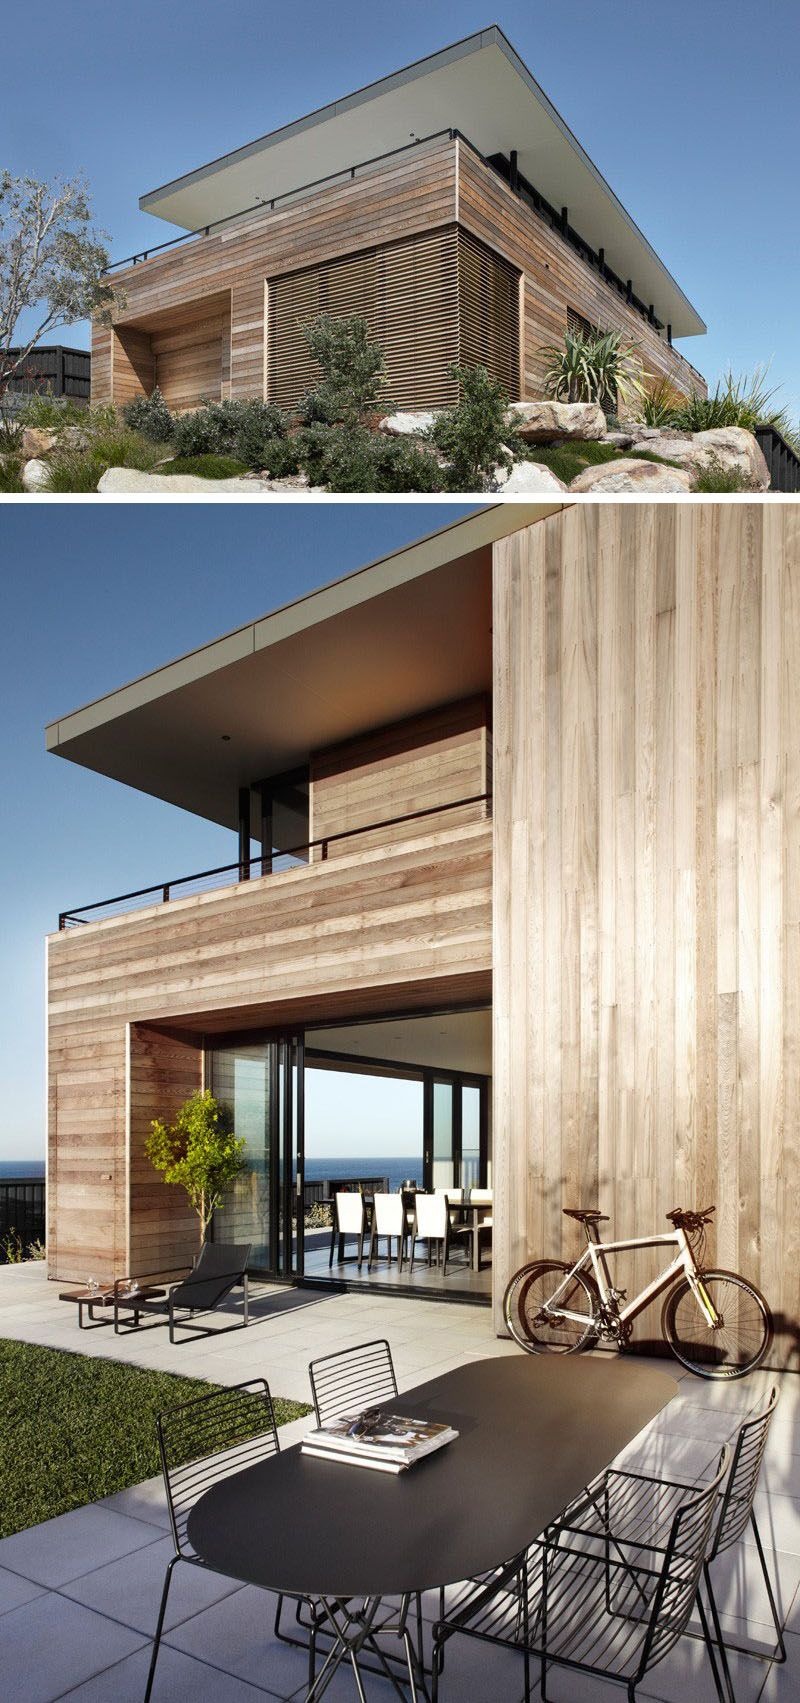 How To Create Modern House Exterior And Interior Design In: 14 Examples Of Modern Beach Houses From Around The World